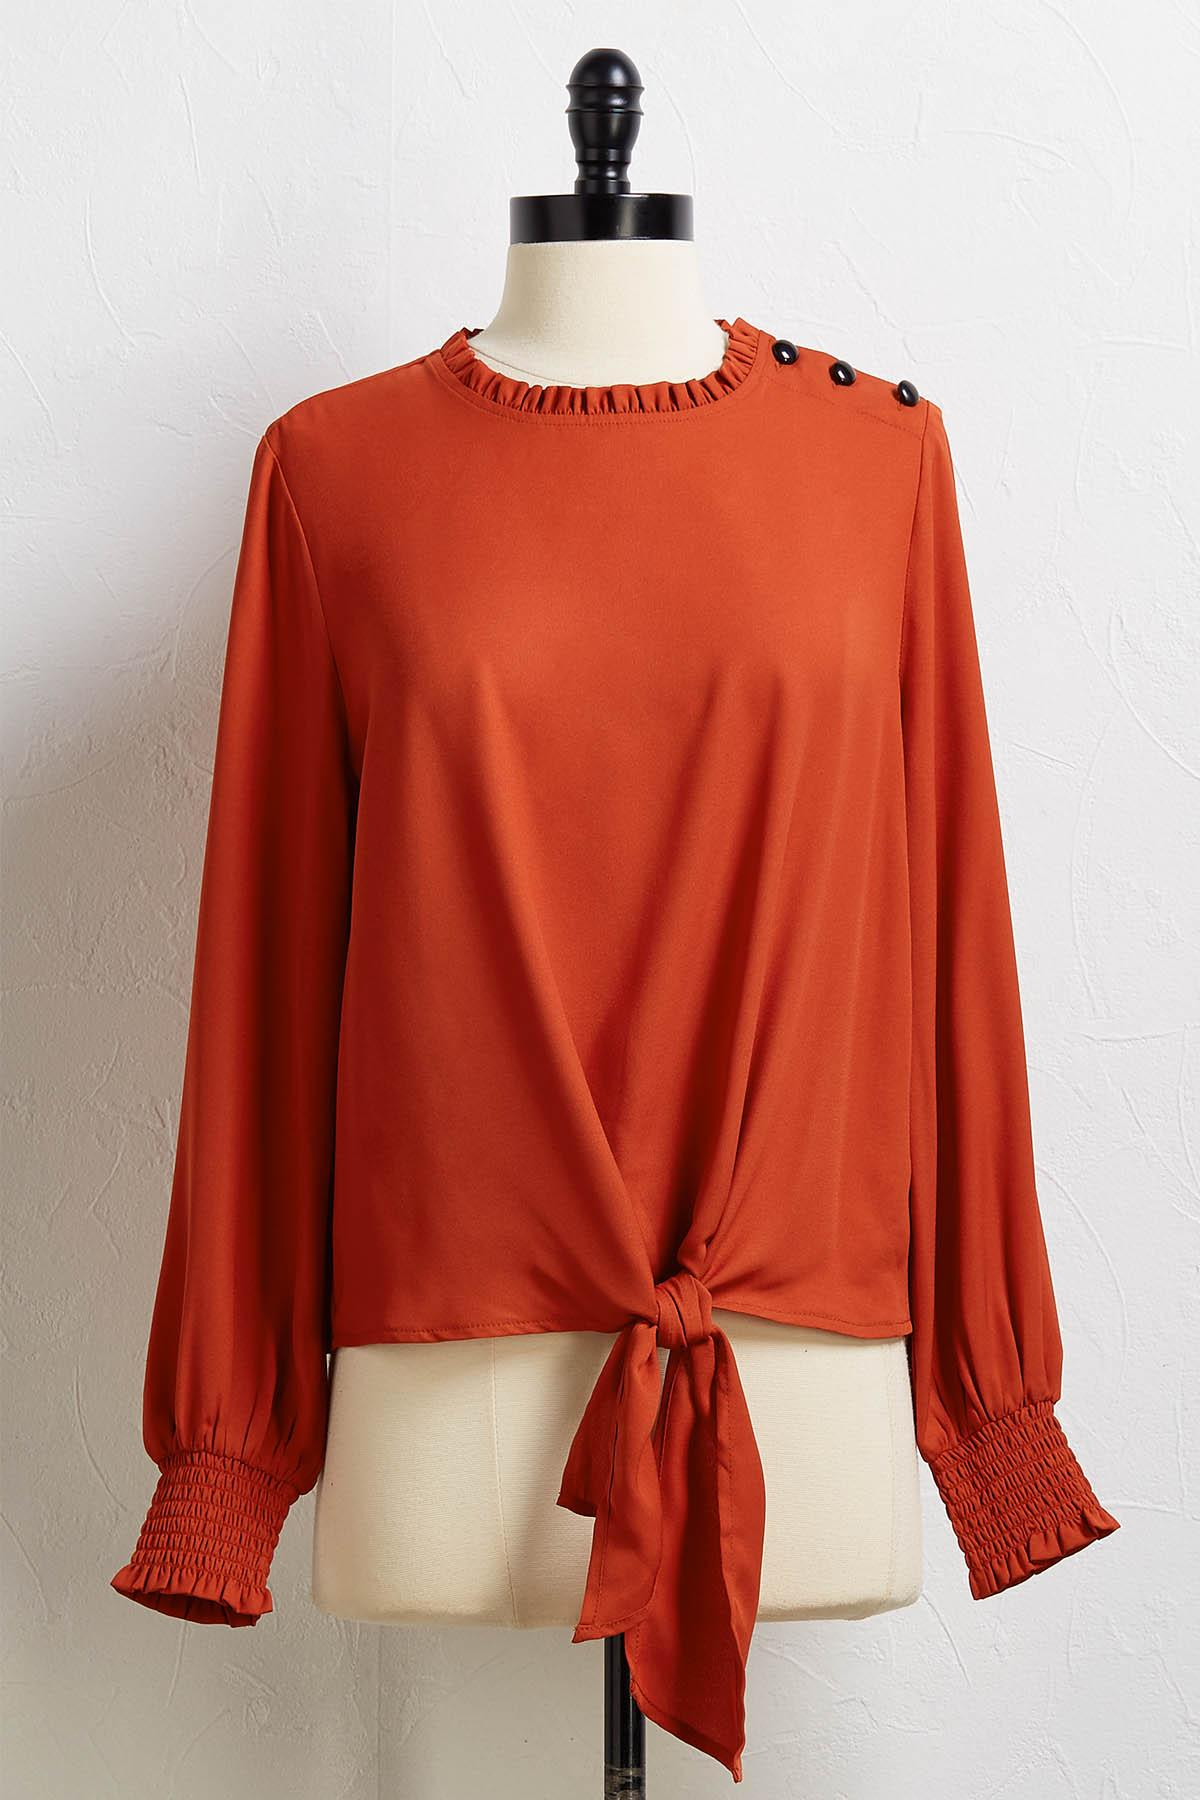 Ready To Smock Top